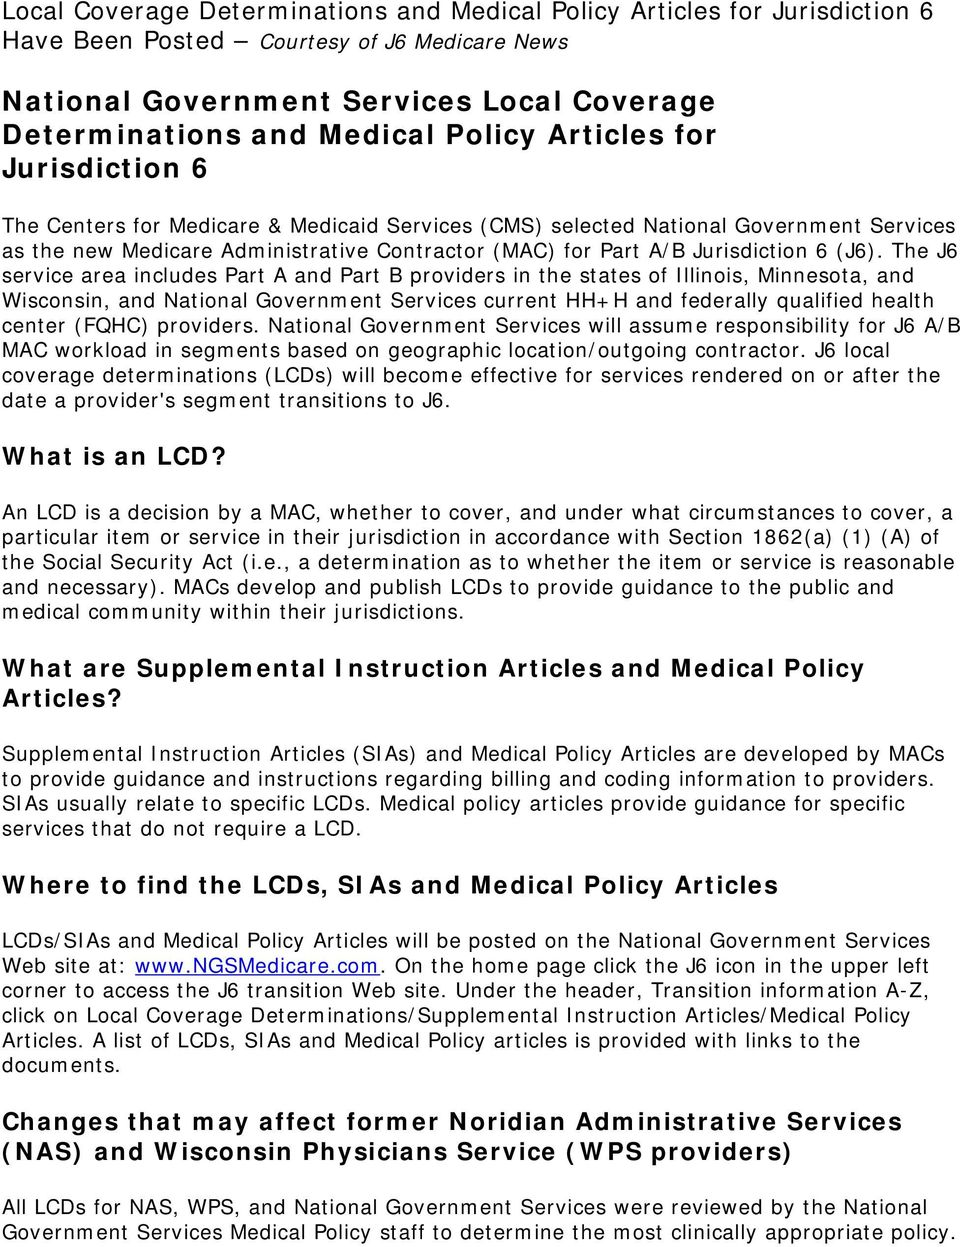 National Government Services Local Coverage Determinations